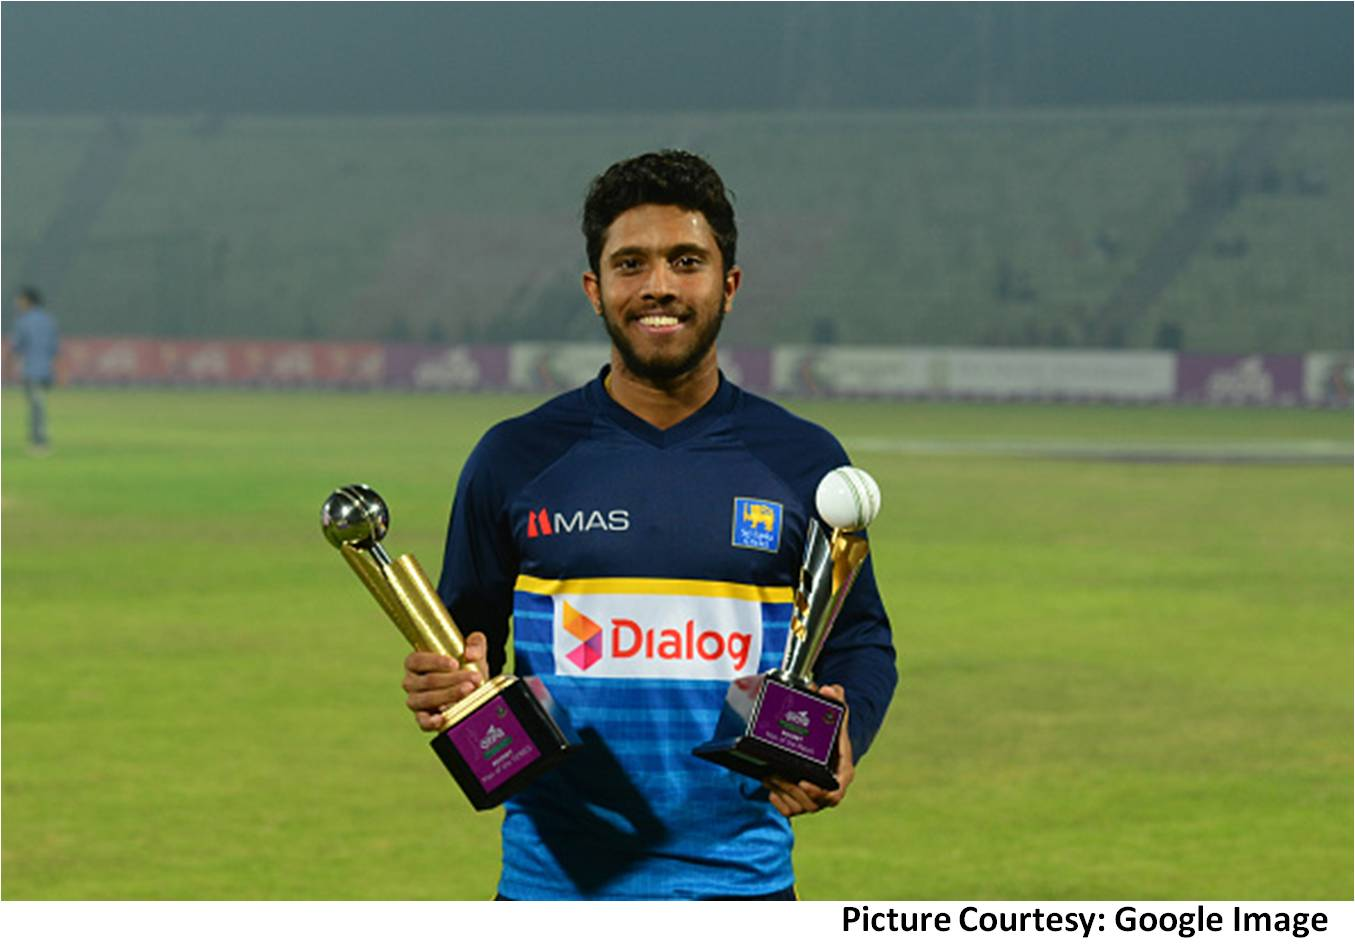 Kusal_Mendis_Best_Test_Cricket_Player